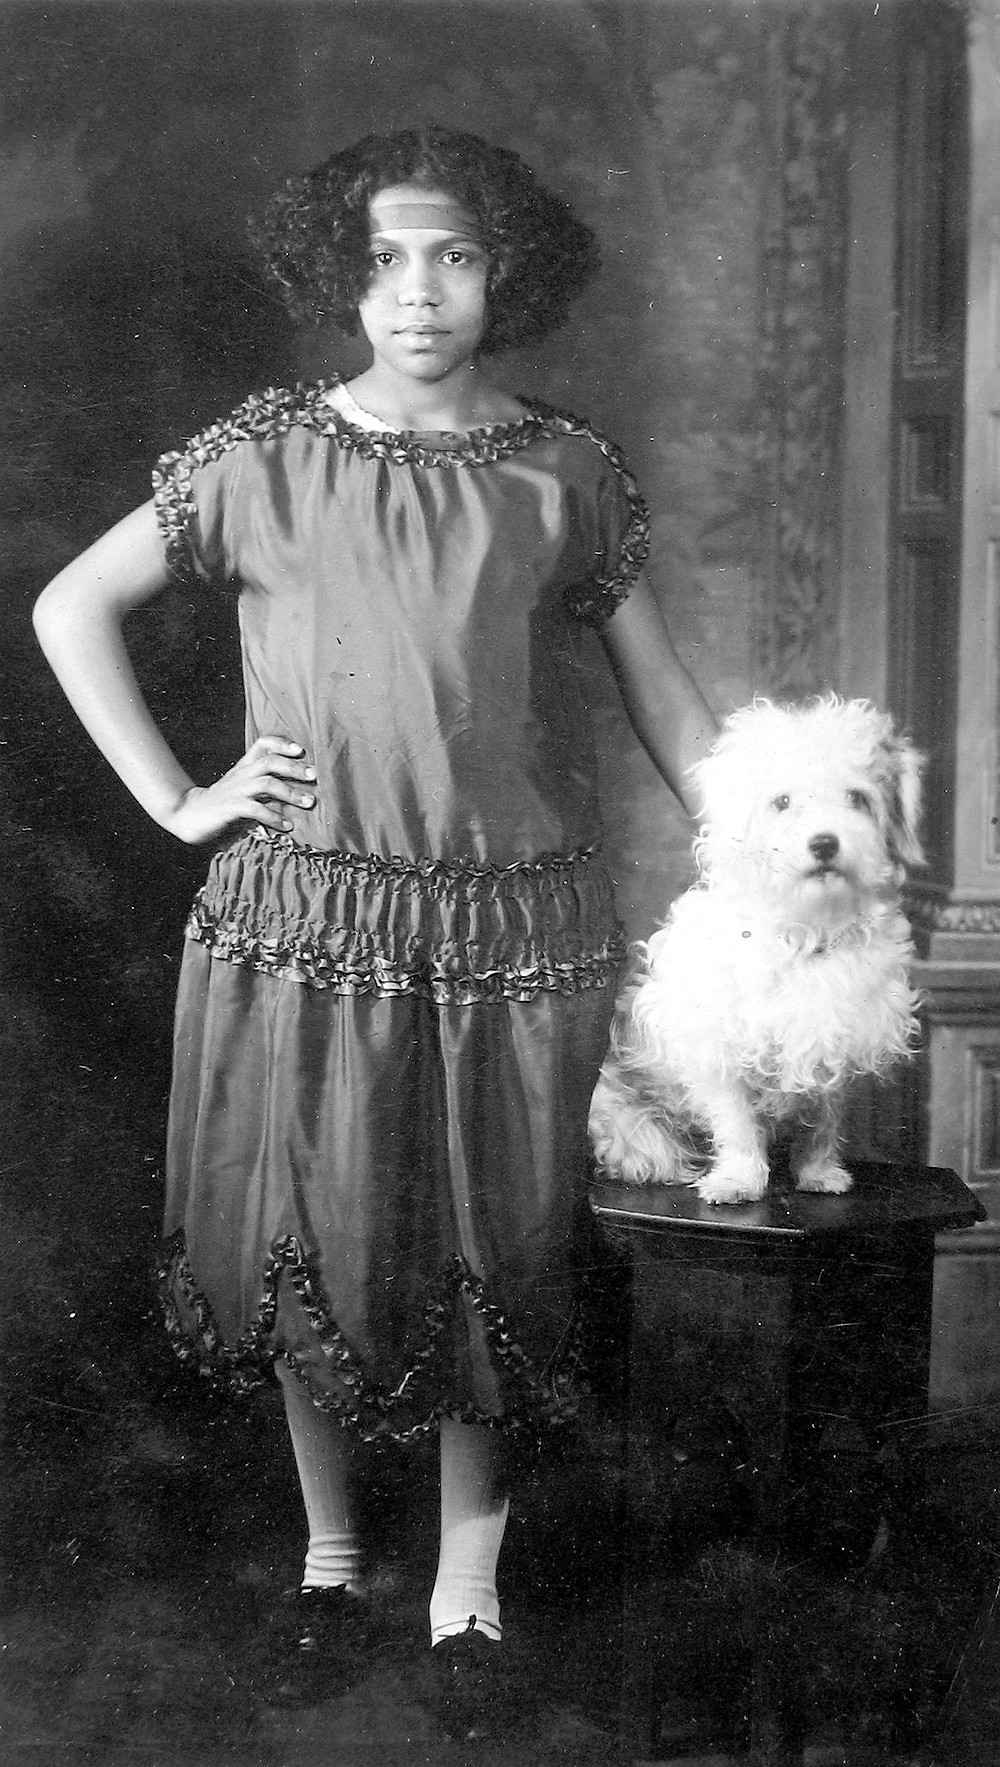 James Van Der Zee, Young Girl with Dog © Donna Mussenden Van Der Zee, Courtesy Howard Greenberg Gallery